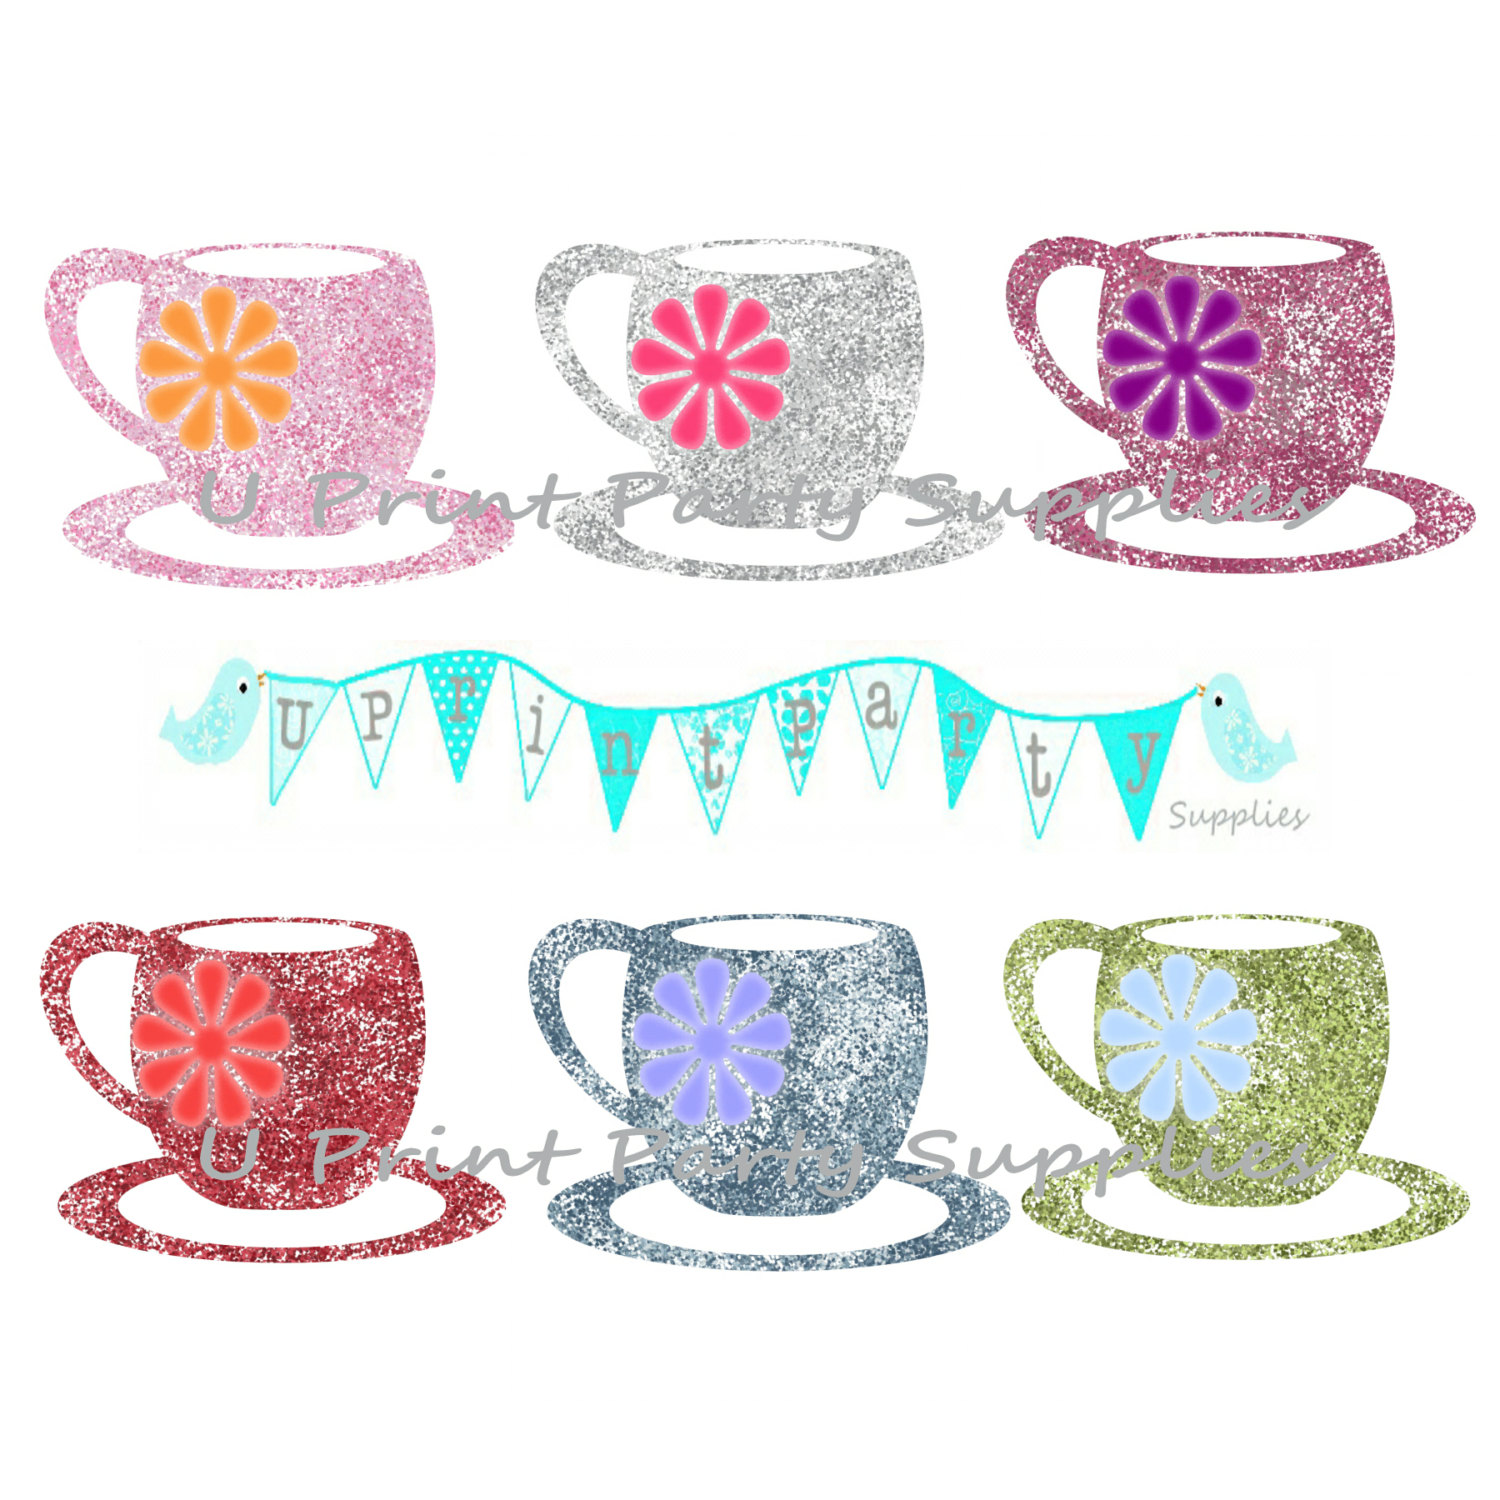 Free Tea Party Cliparts, Download Free Clip Art, Free Clip Art on.